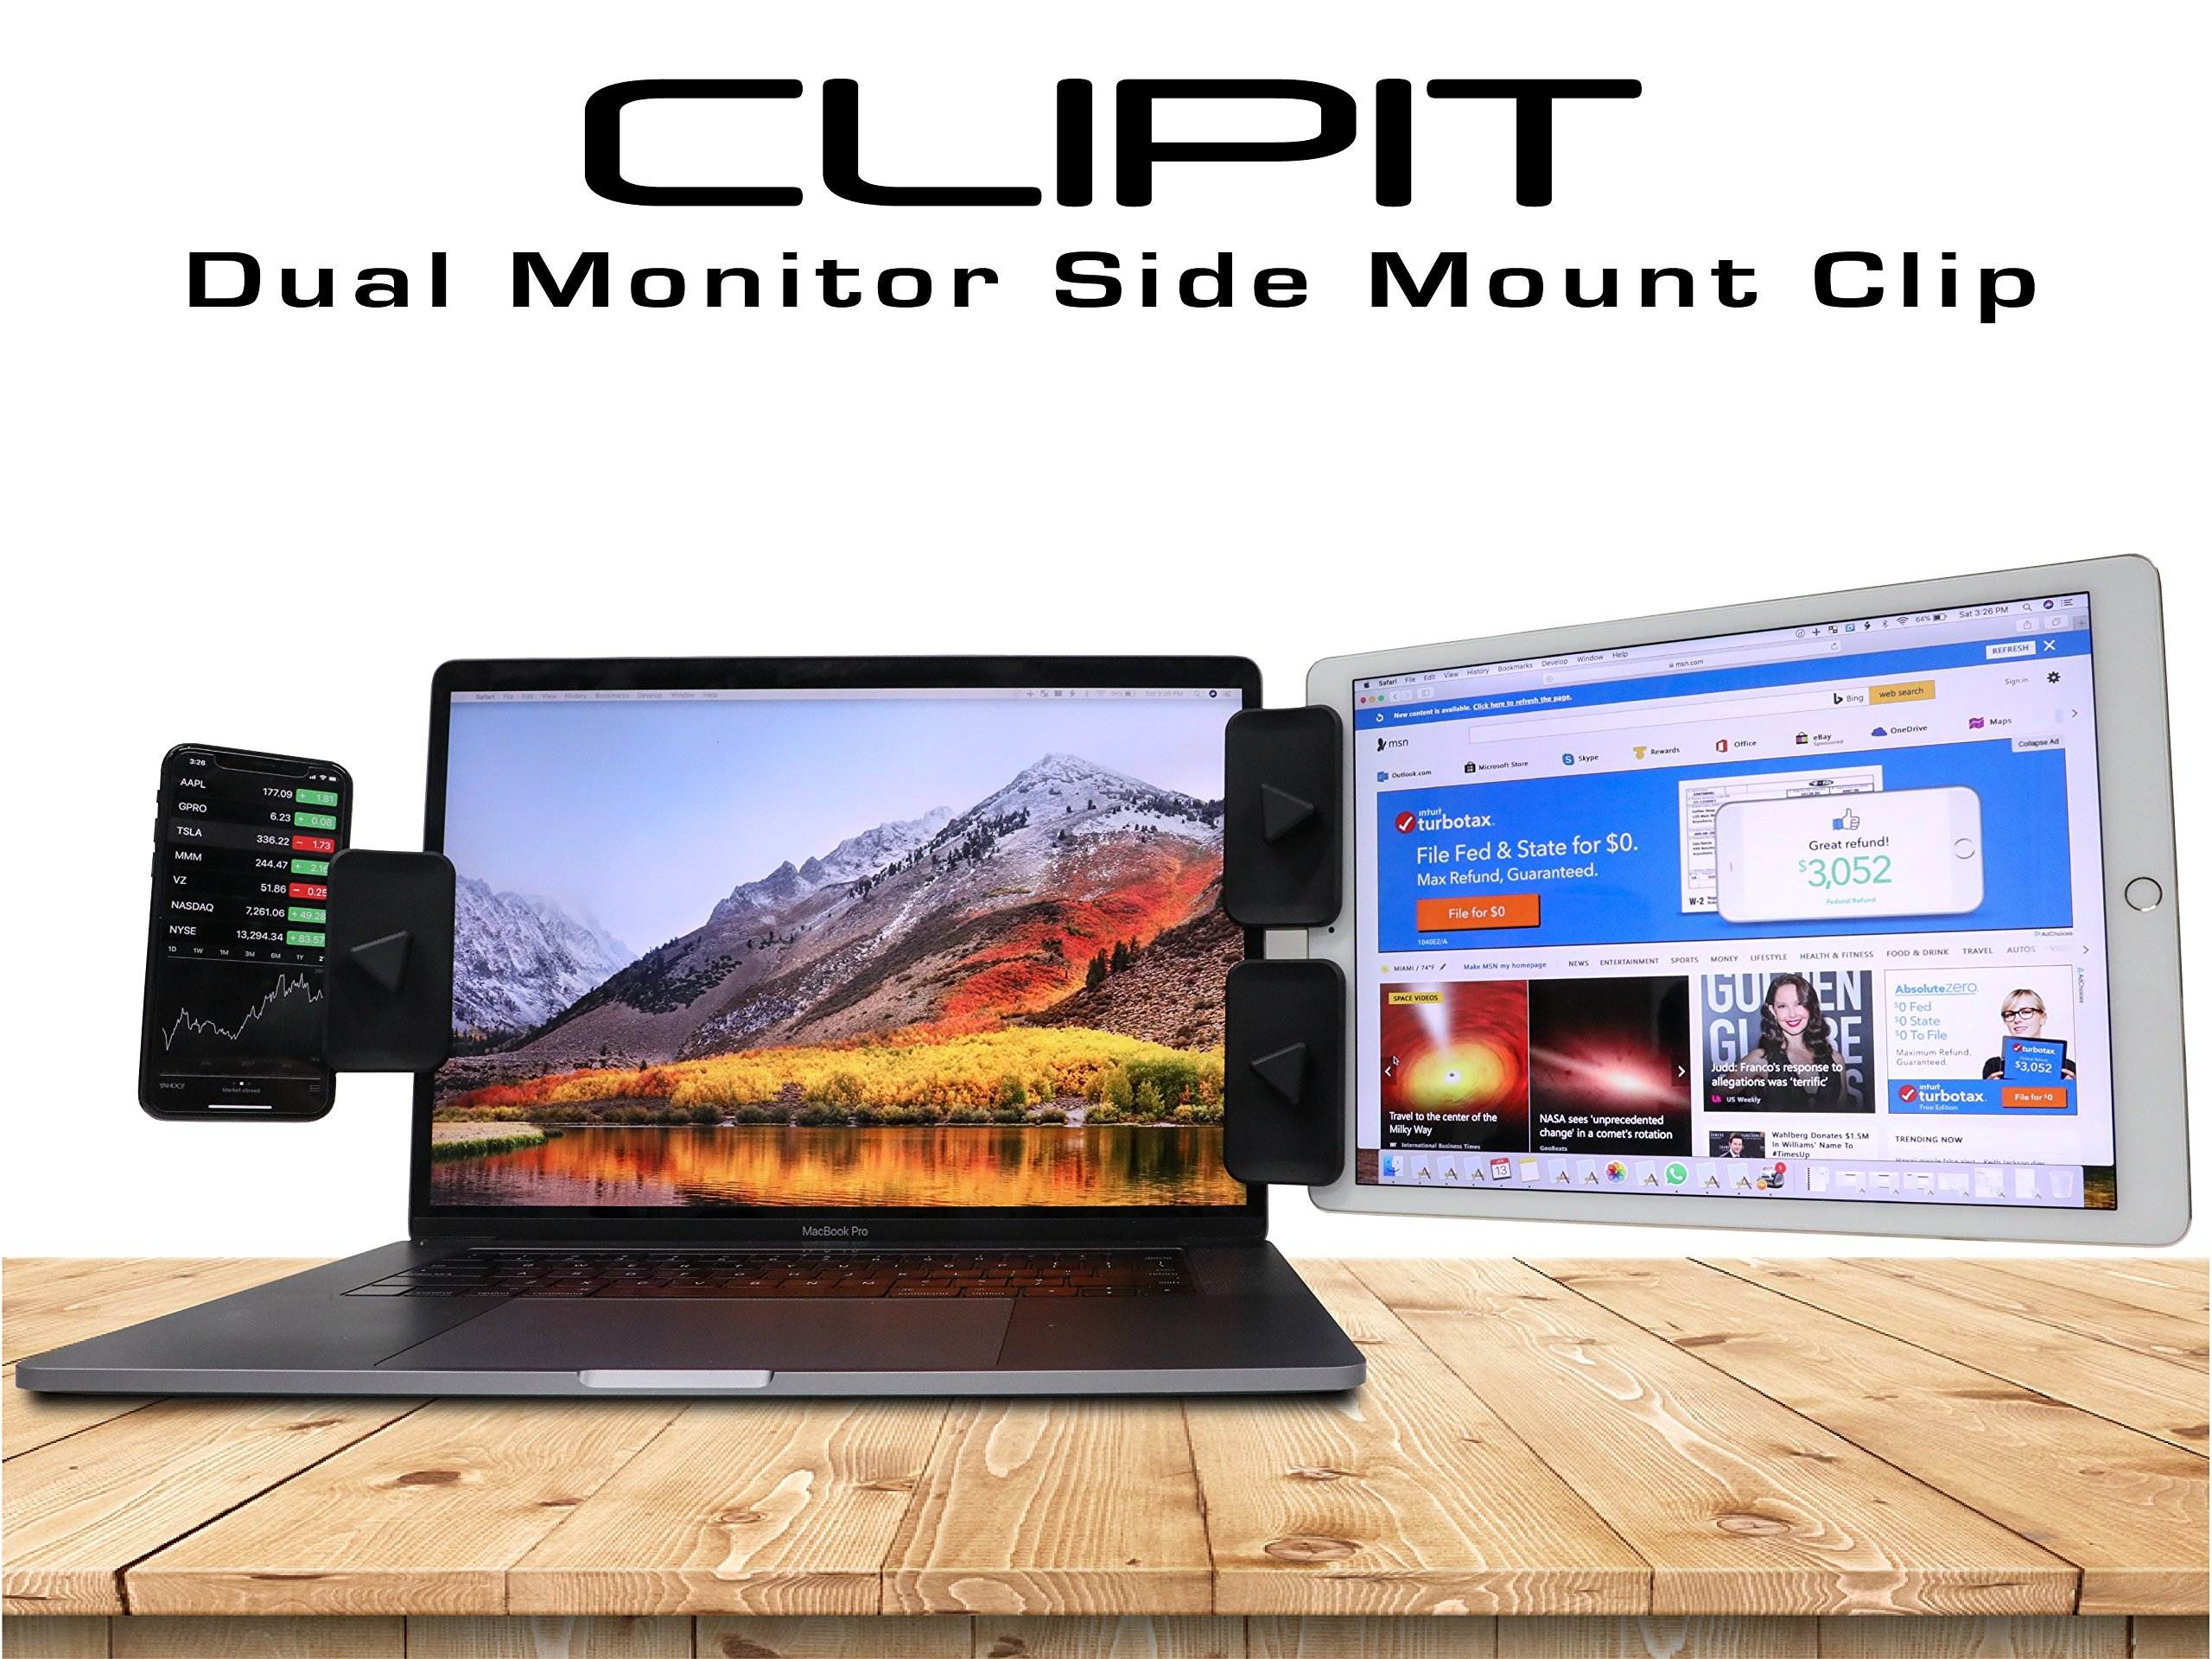 CLIPIT Side Mount Clip by AXTION | iPad Holder and Tablet Stand, Dual Monitor Mount Experience iPad Stand, Cell Phone Mount or Tablet Mount for Your Laptop, Instant Second Display by AXTION